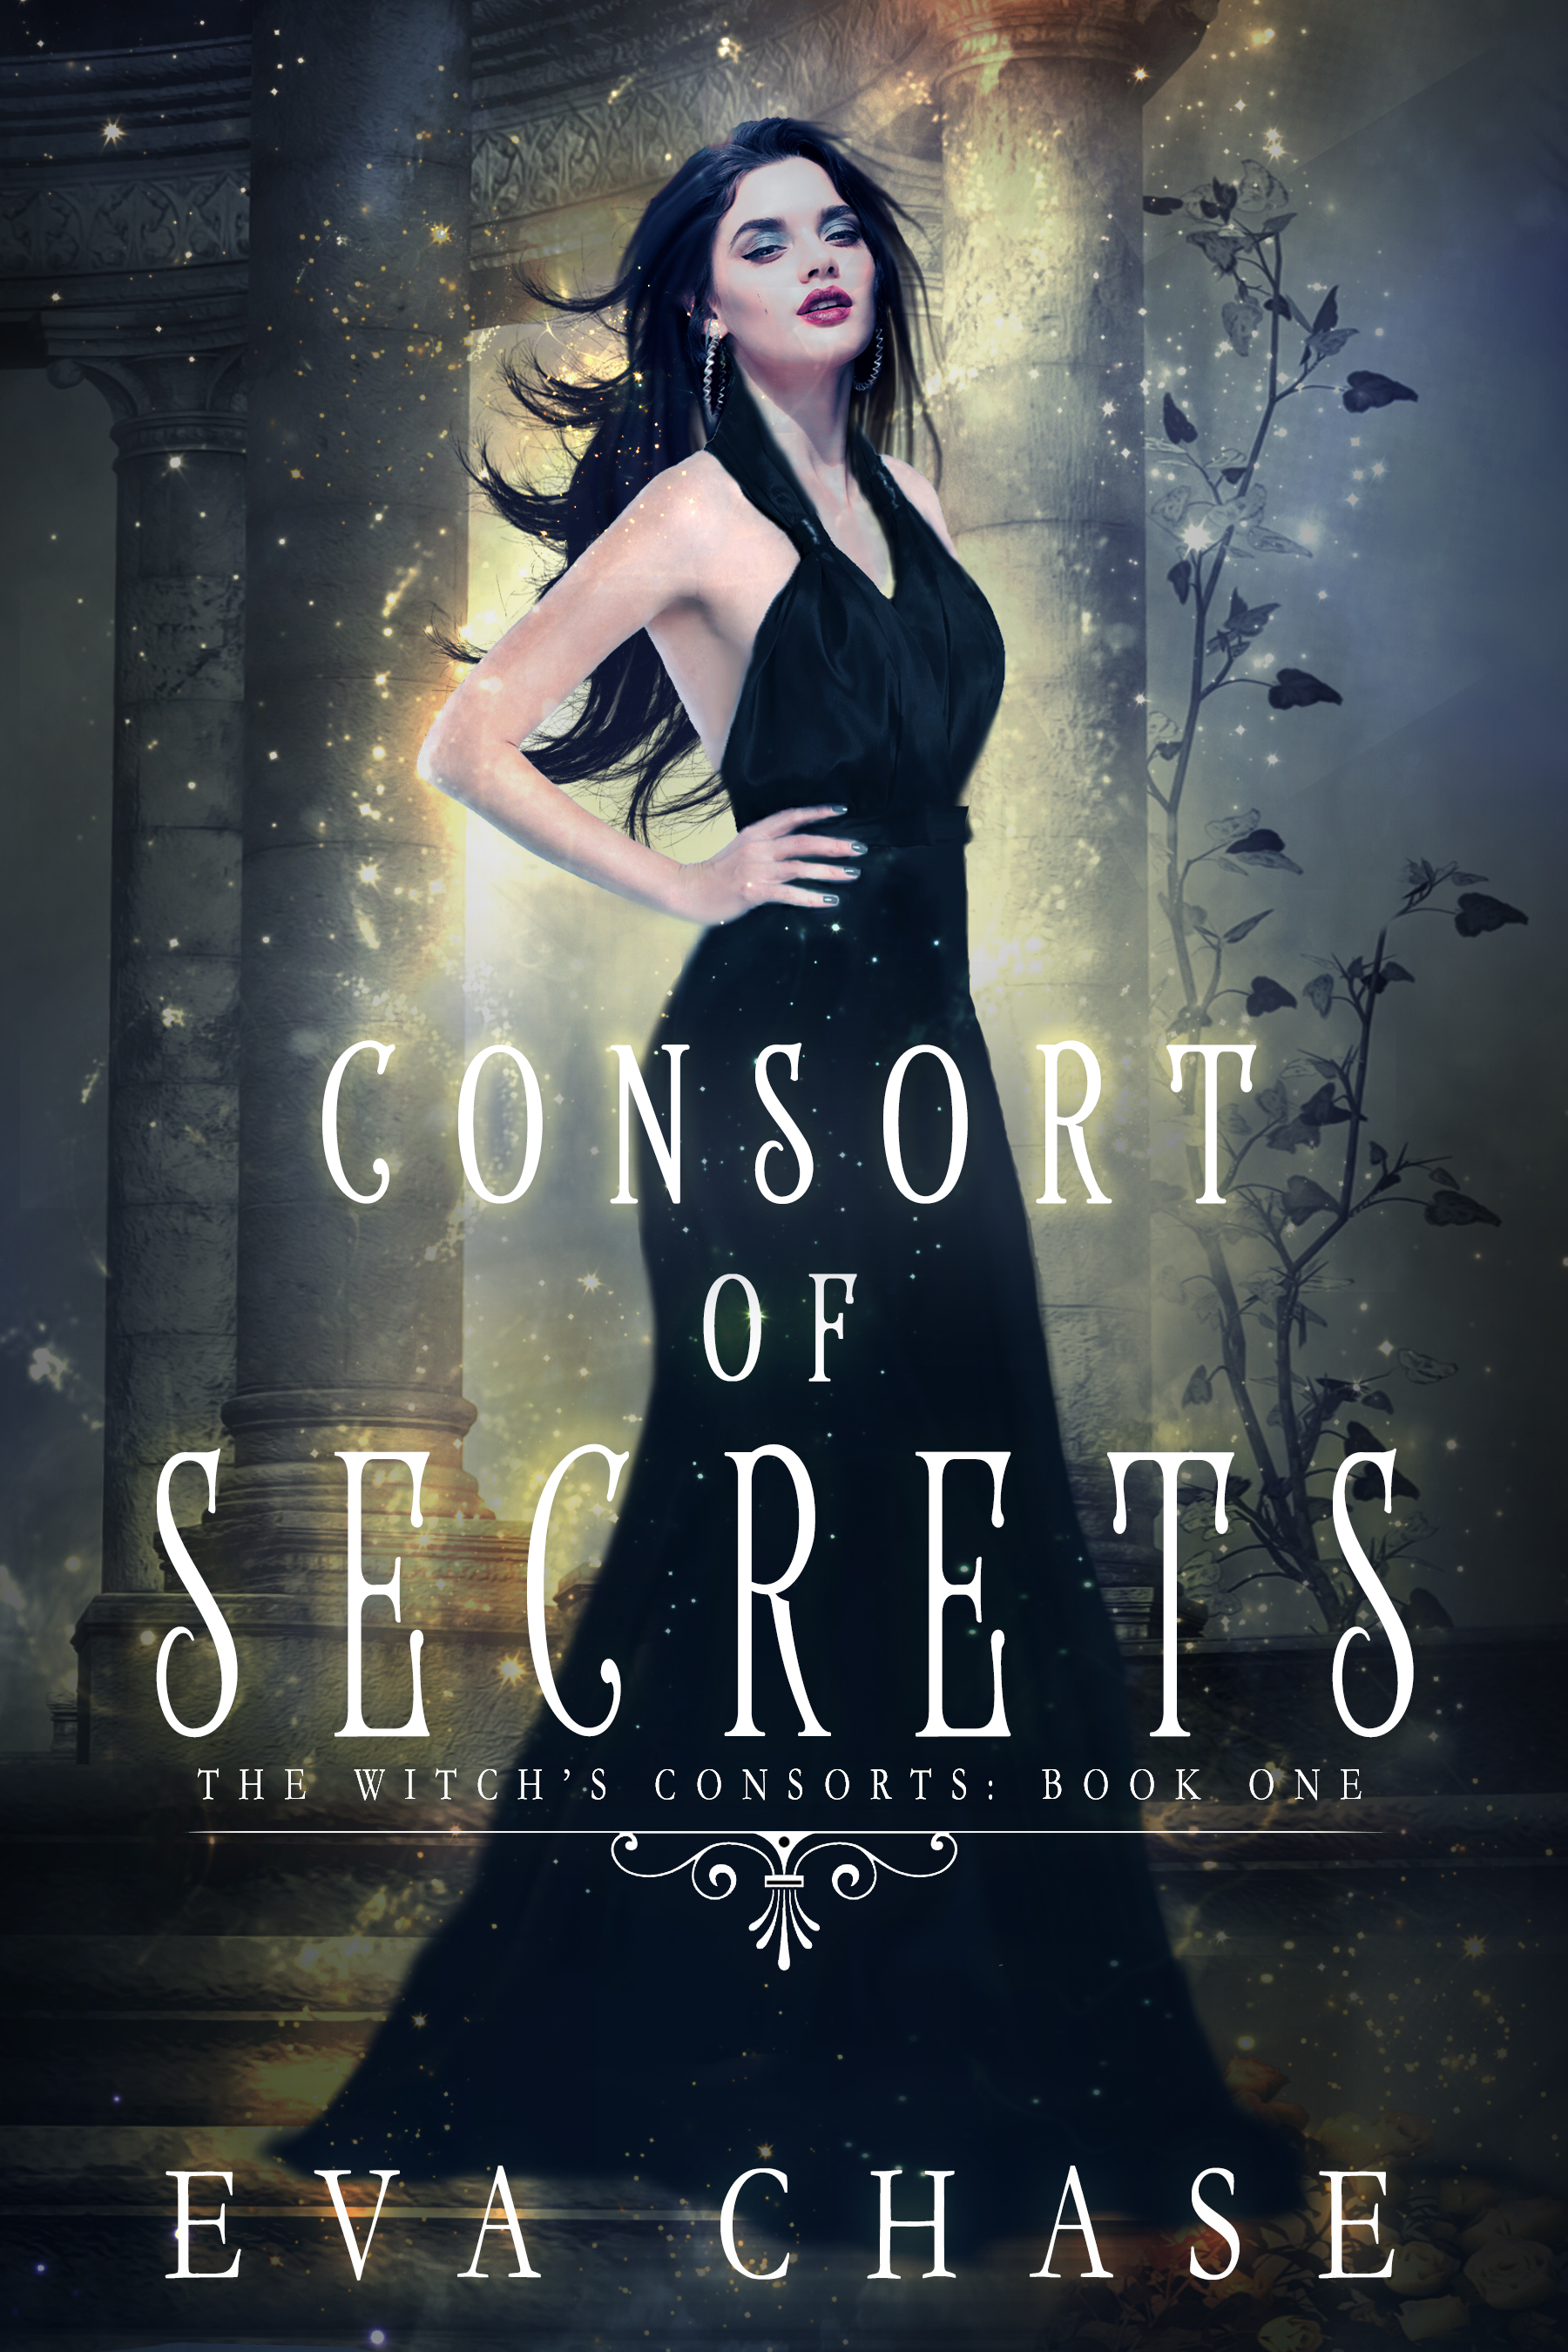 Eva_Chase_The_Witch_s_Consorts_Consort_of_Secrets1